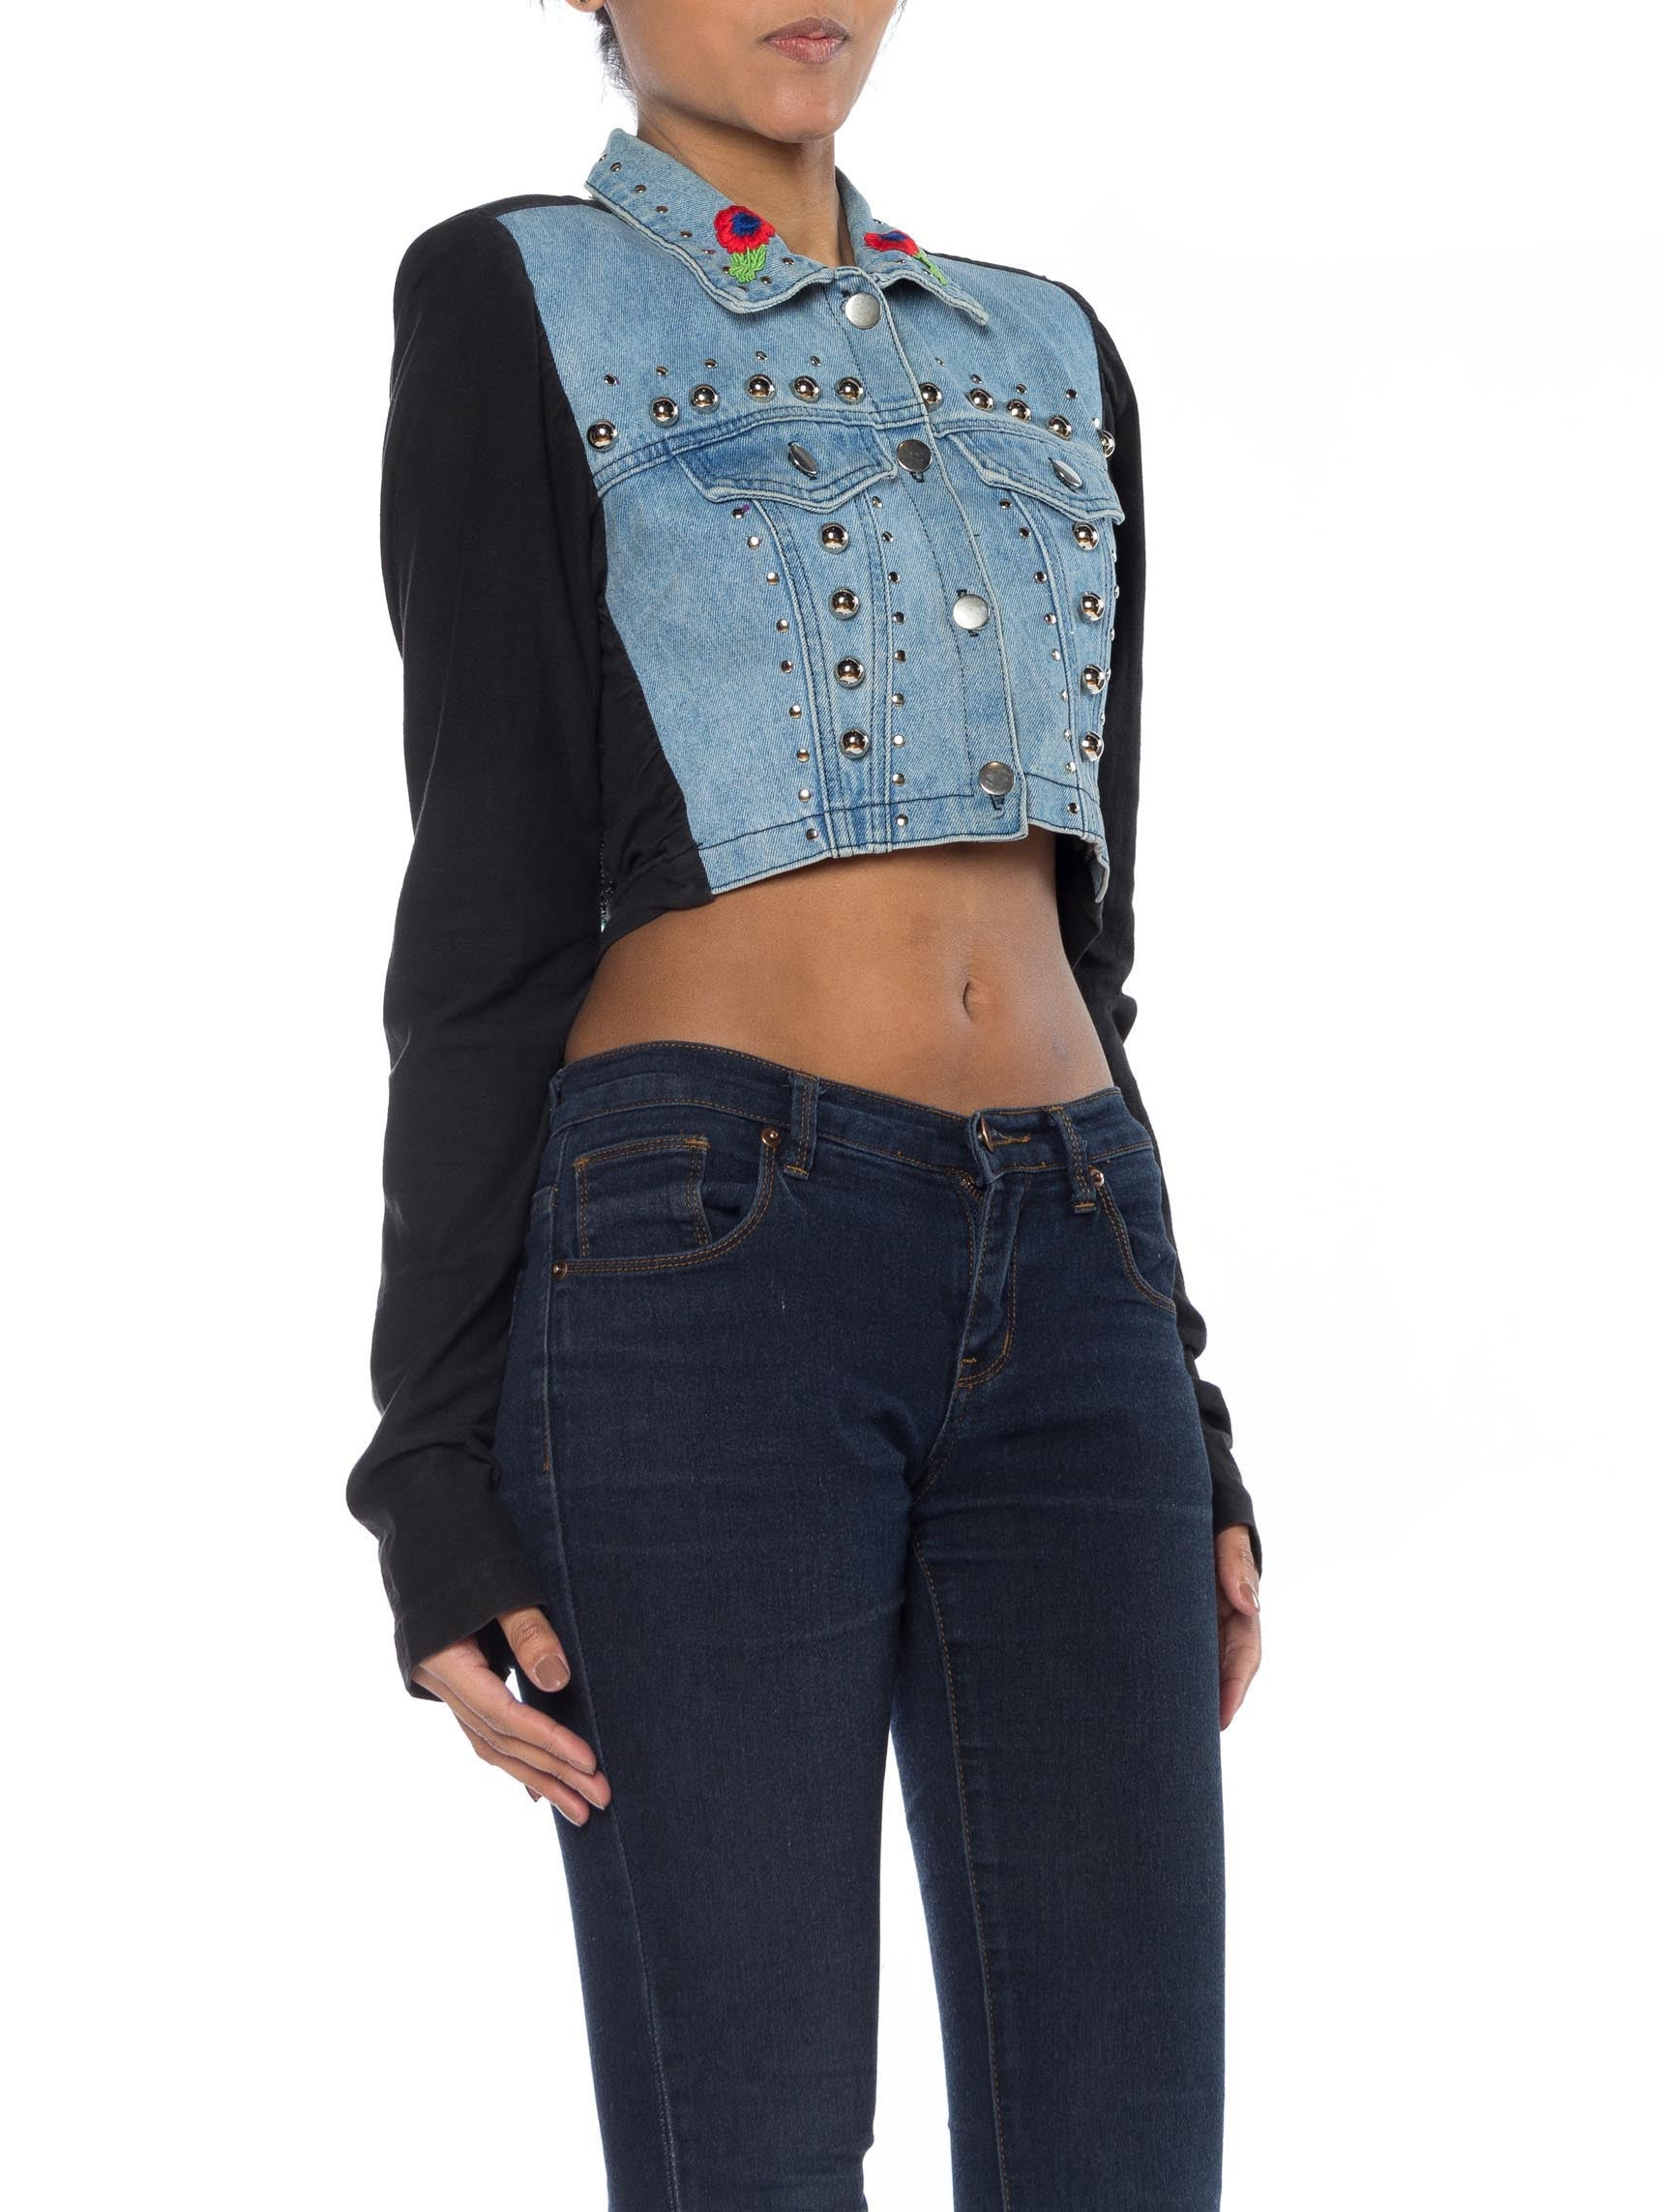 MORPHEW COLLECTION Cotton Chrome Studded Denim Jacket With Embroidery & Beaded Bird  Patch